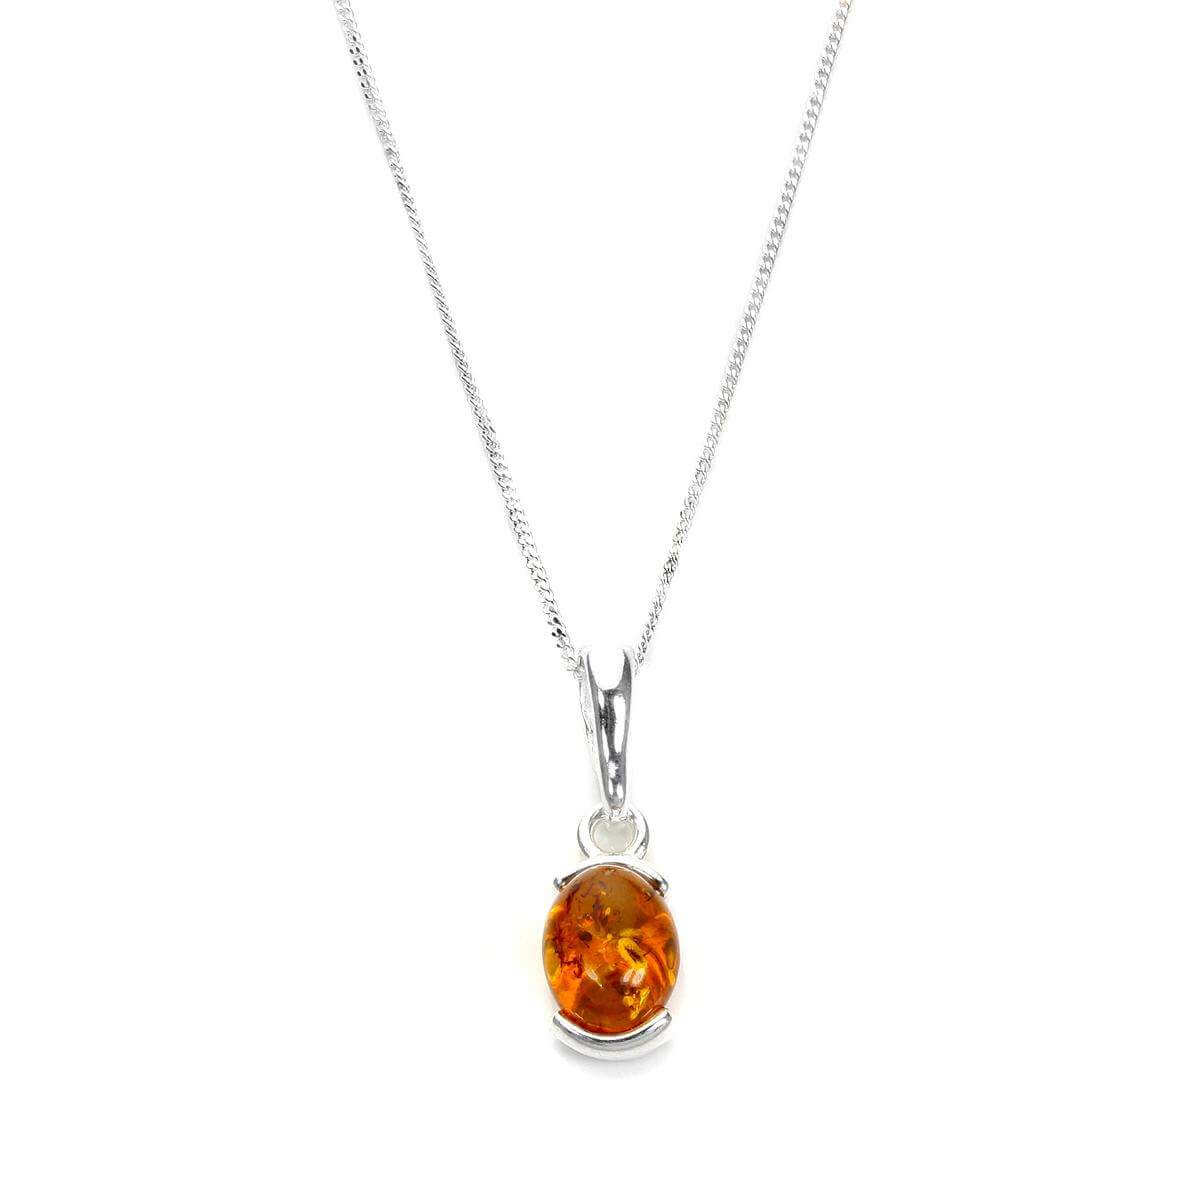 Small Sterling Silver & Baltic Amber Oval Pendant